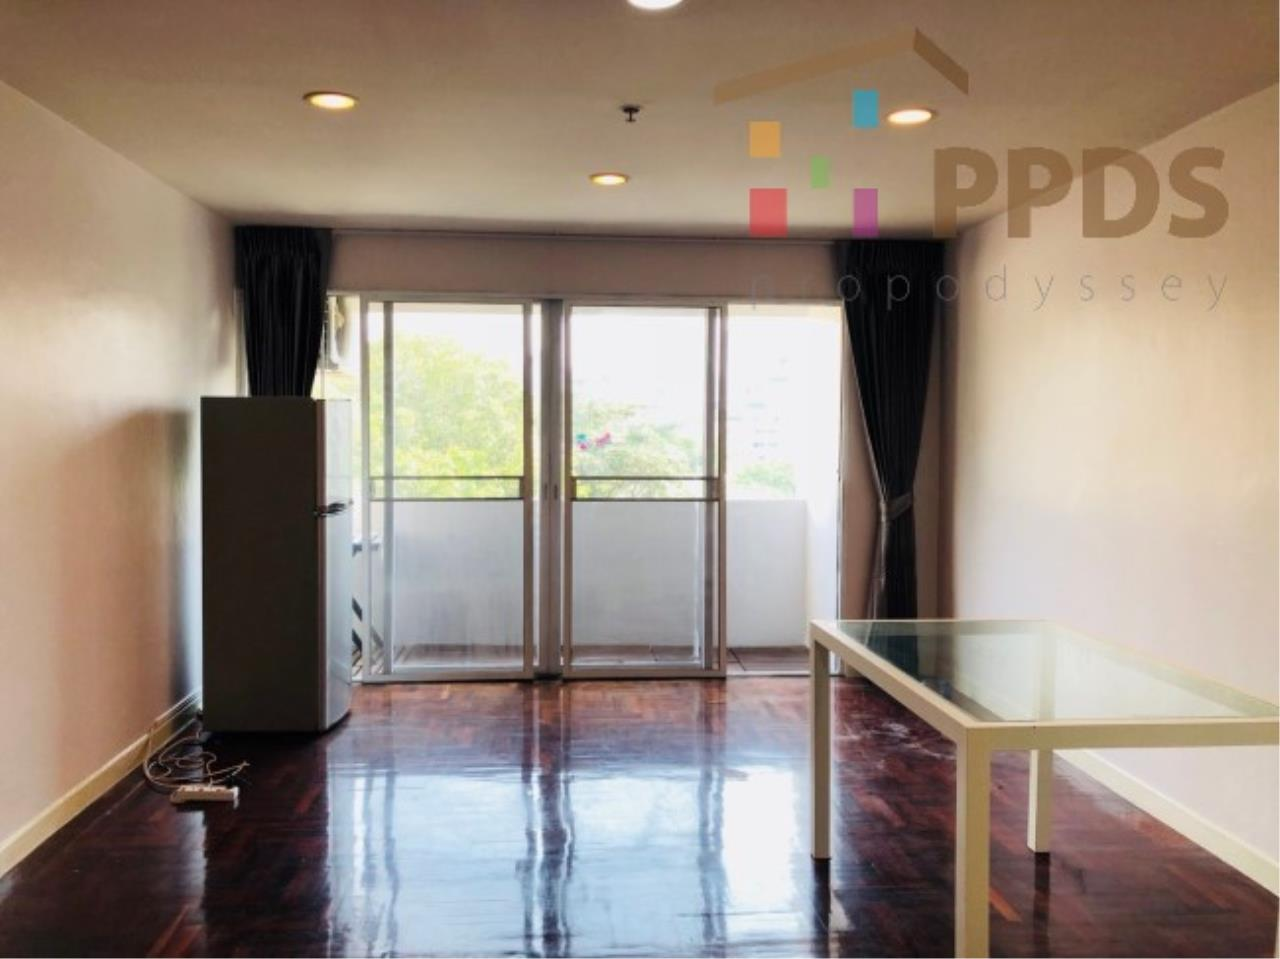 Propodyssey Agency's Sale 2 beds condo at Kiarti Thanee City Mansion Sukhumvit 31 only 6.78 MB 2